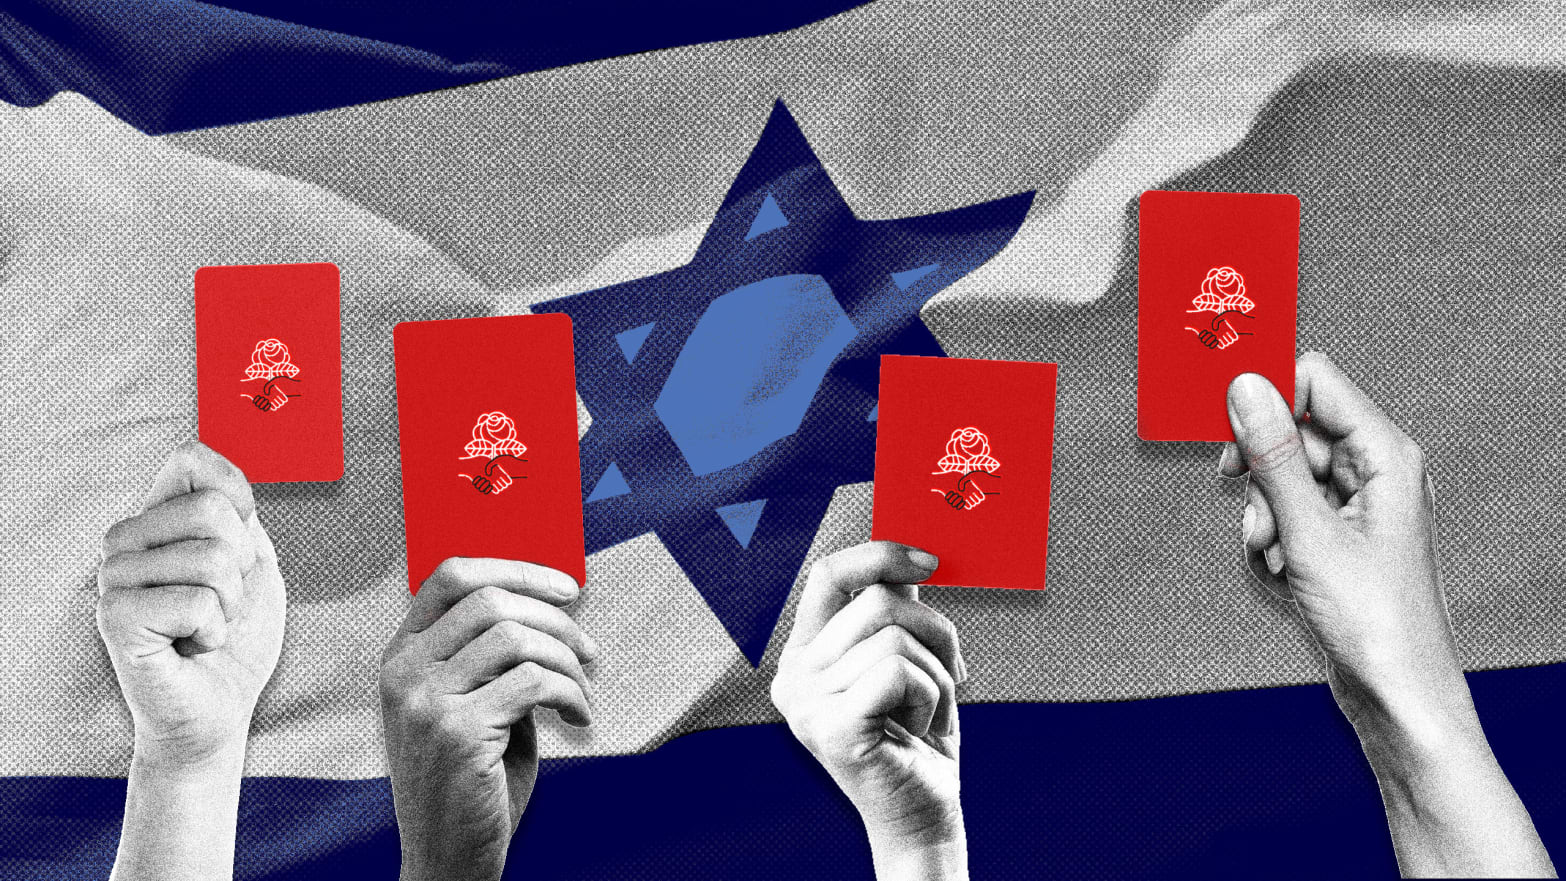 How the DSA Went From Supporting Israel to Boycotting the